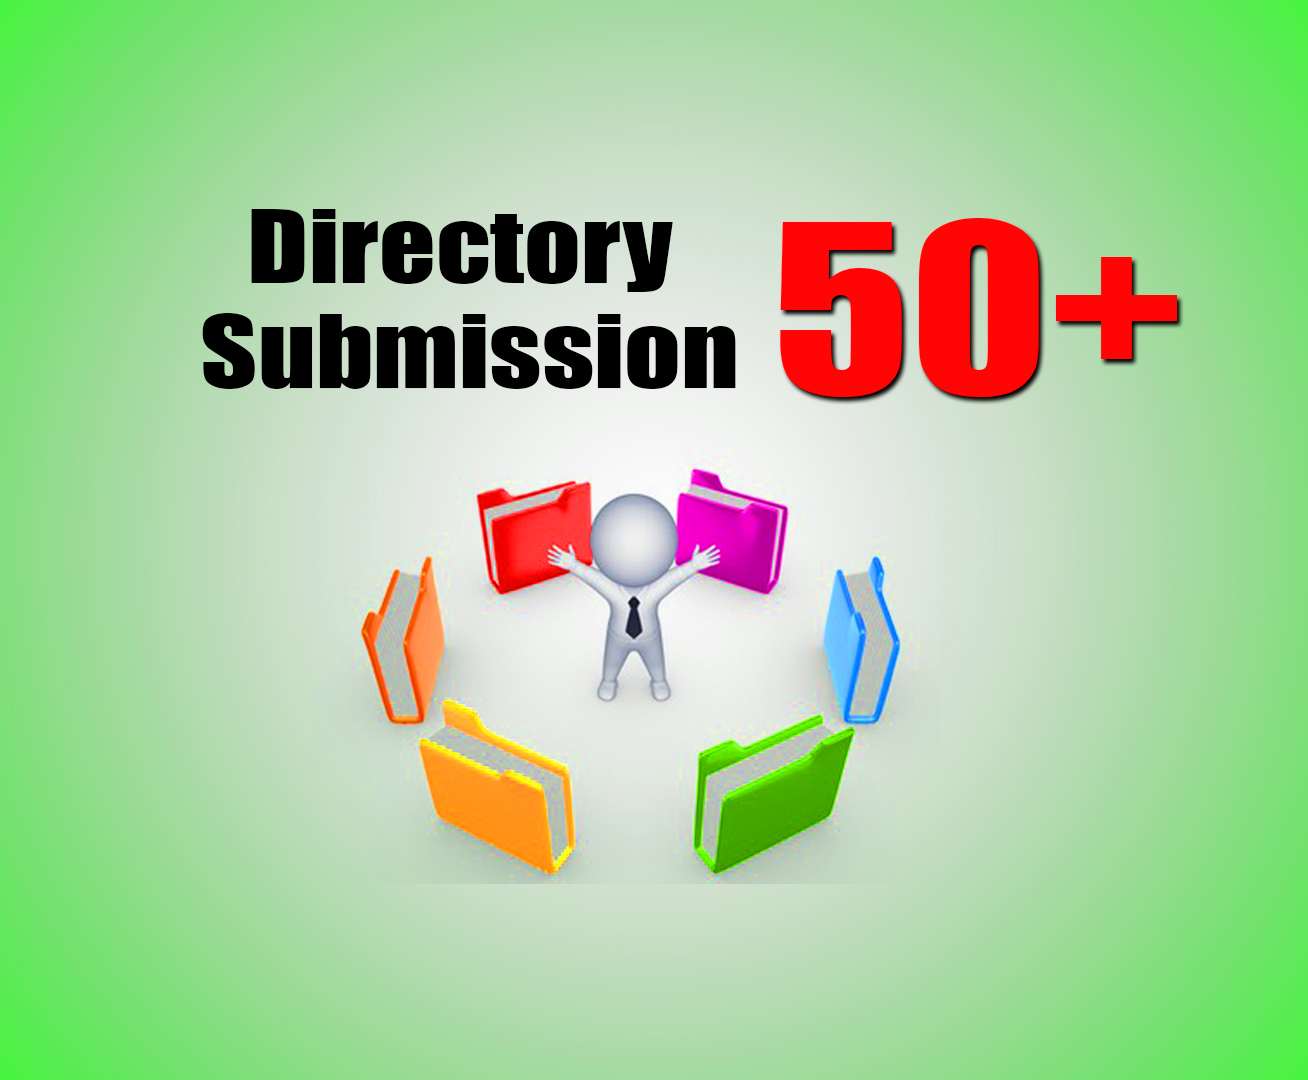 QUALITY INSURED 50+ directory submission